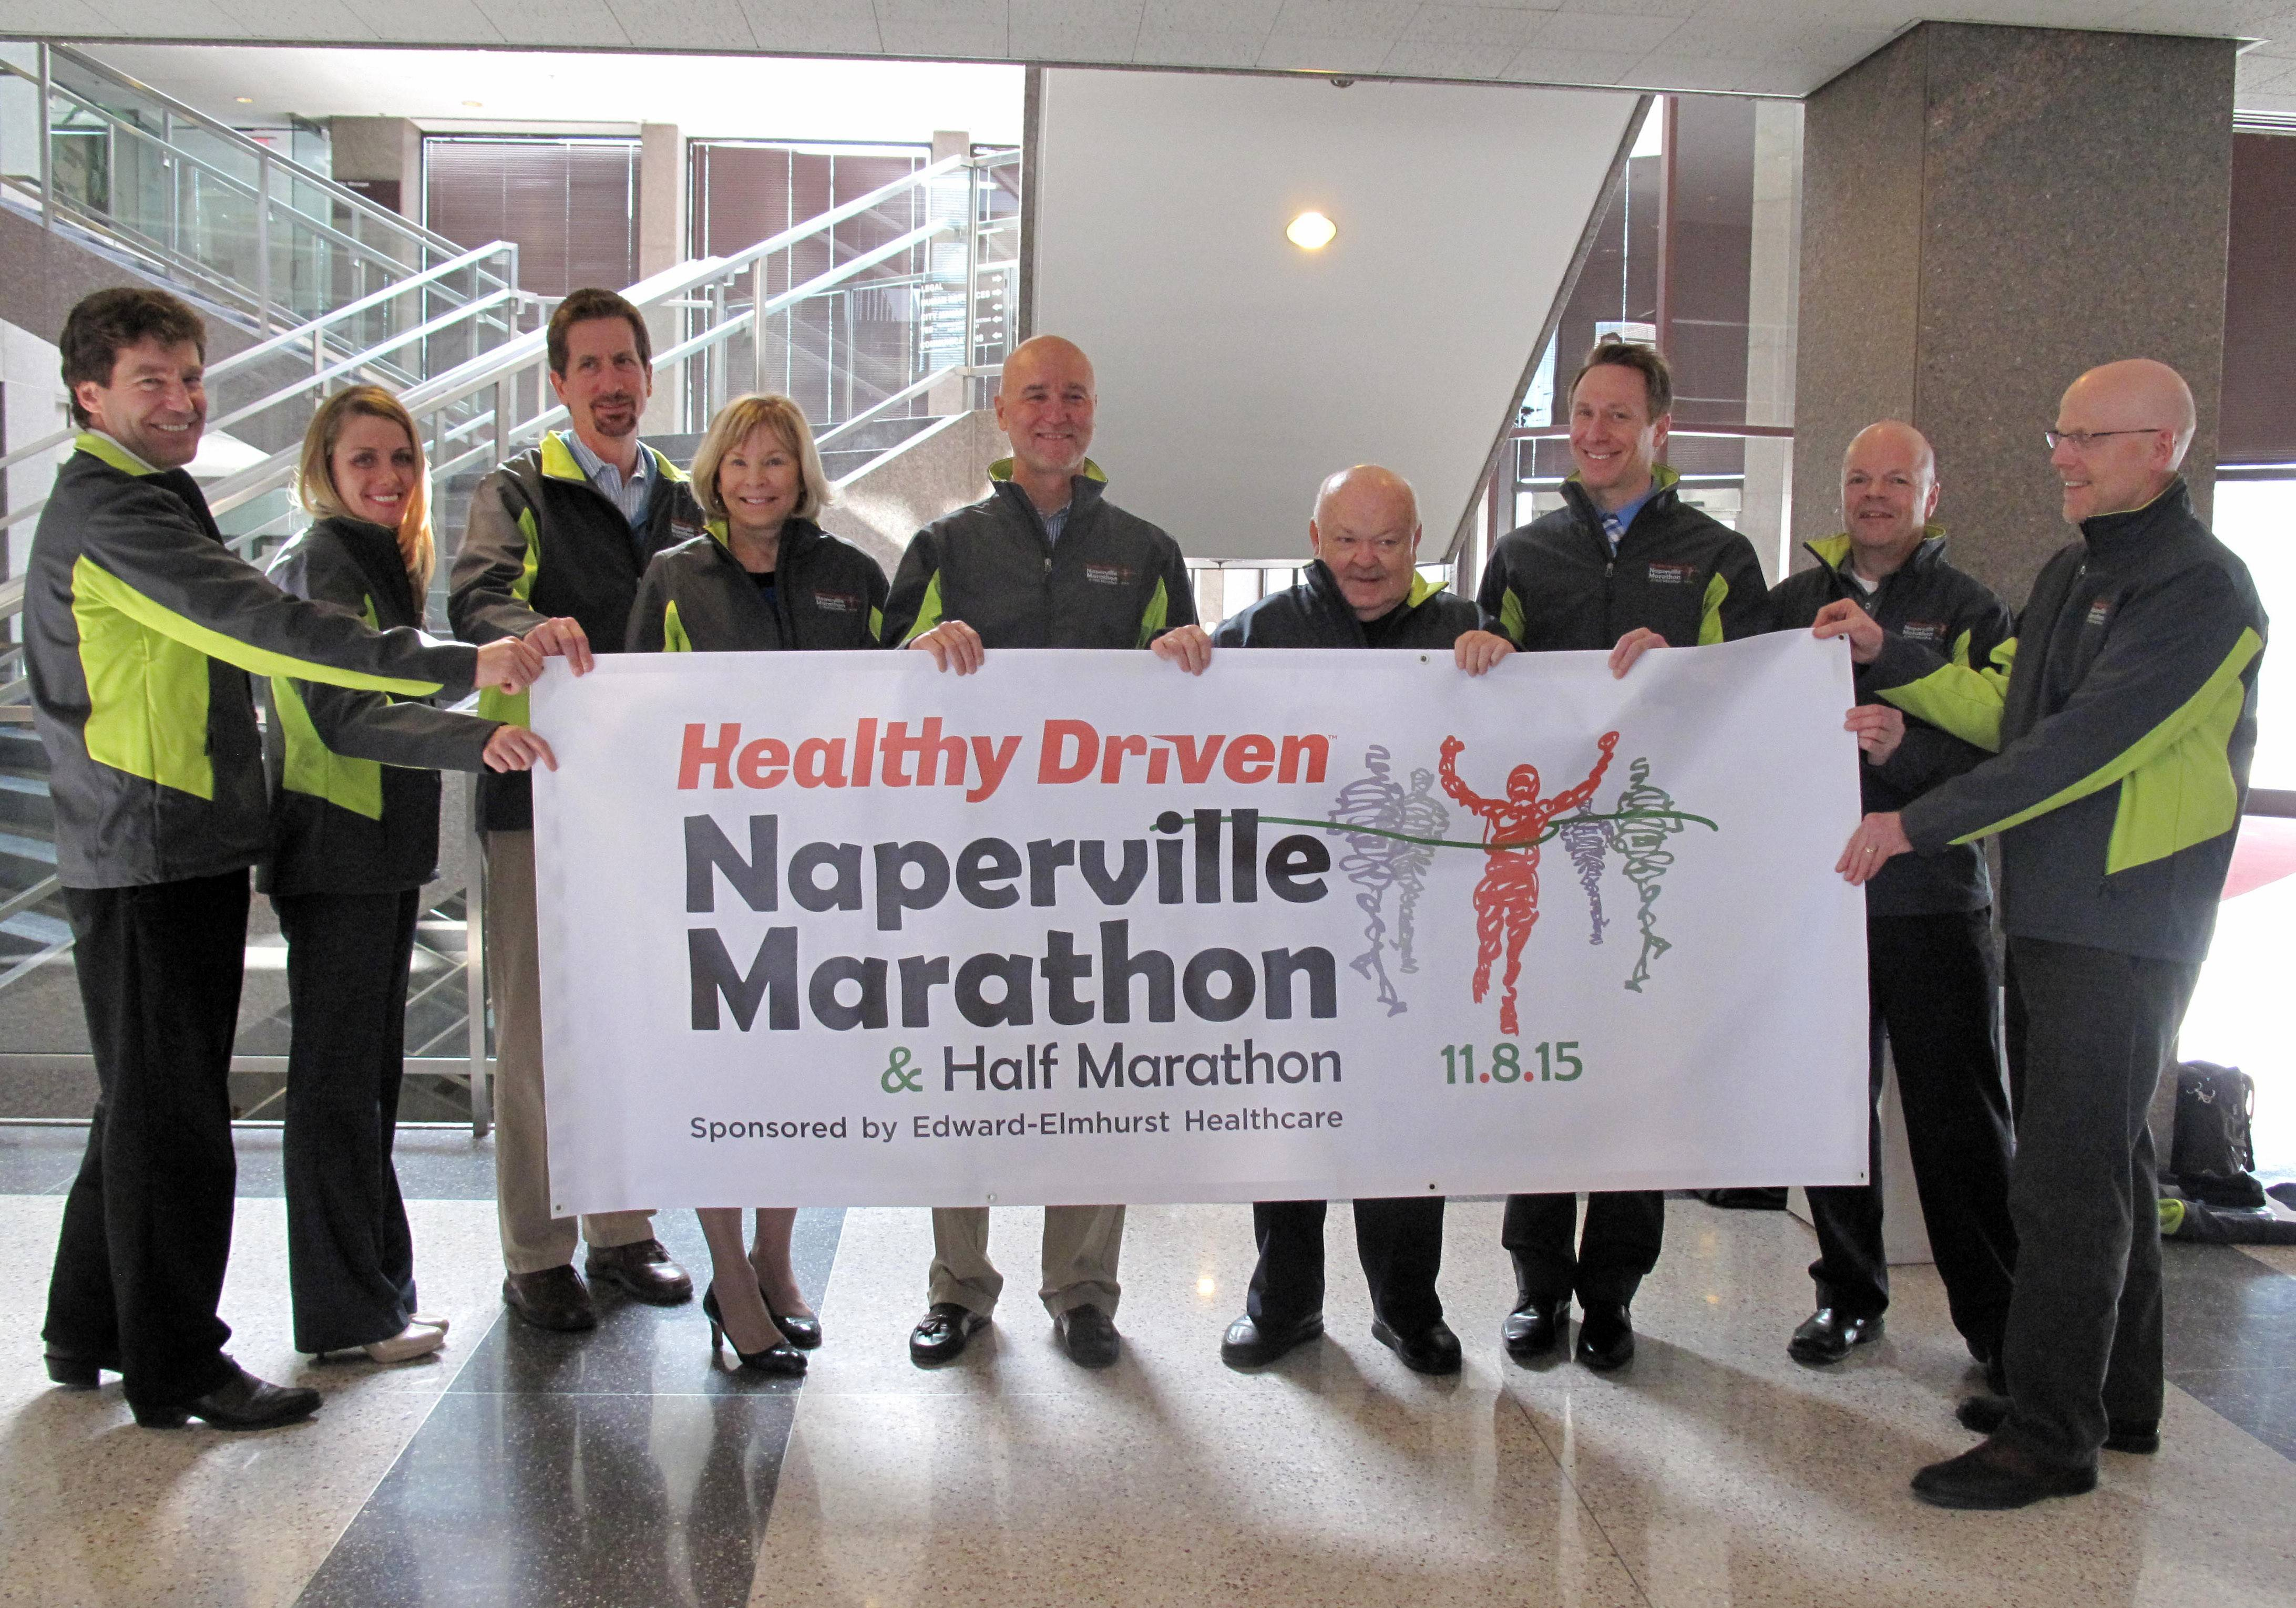 'Healthy Driven' in new name for Naperville Marathon